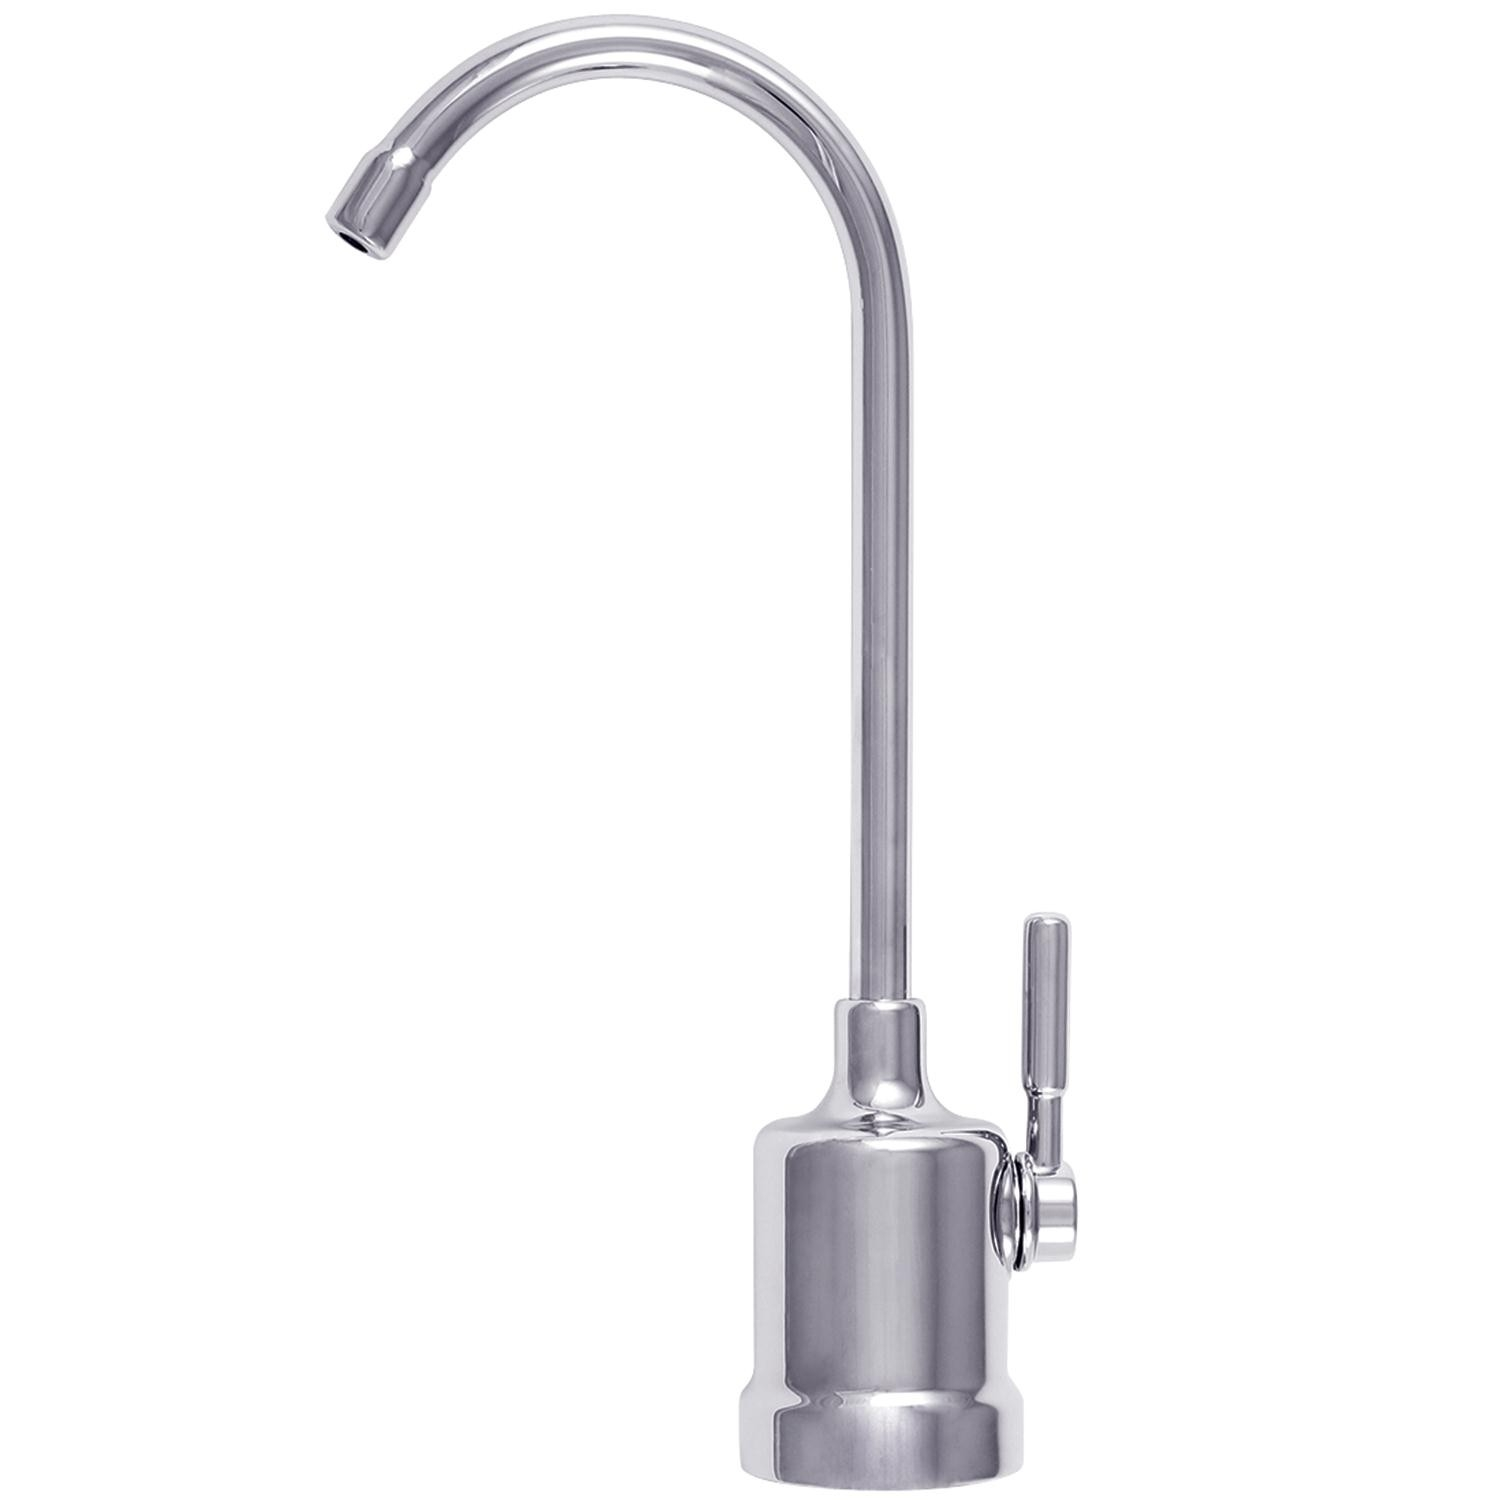 ro faucets stainless steel ro faucets stainless steel reverse osmosis faucet stainless steel bathroom ideas reverse 1500 x 1500